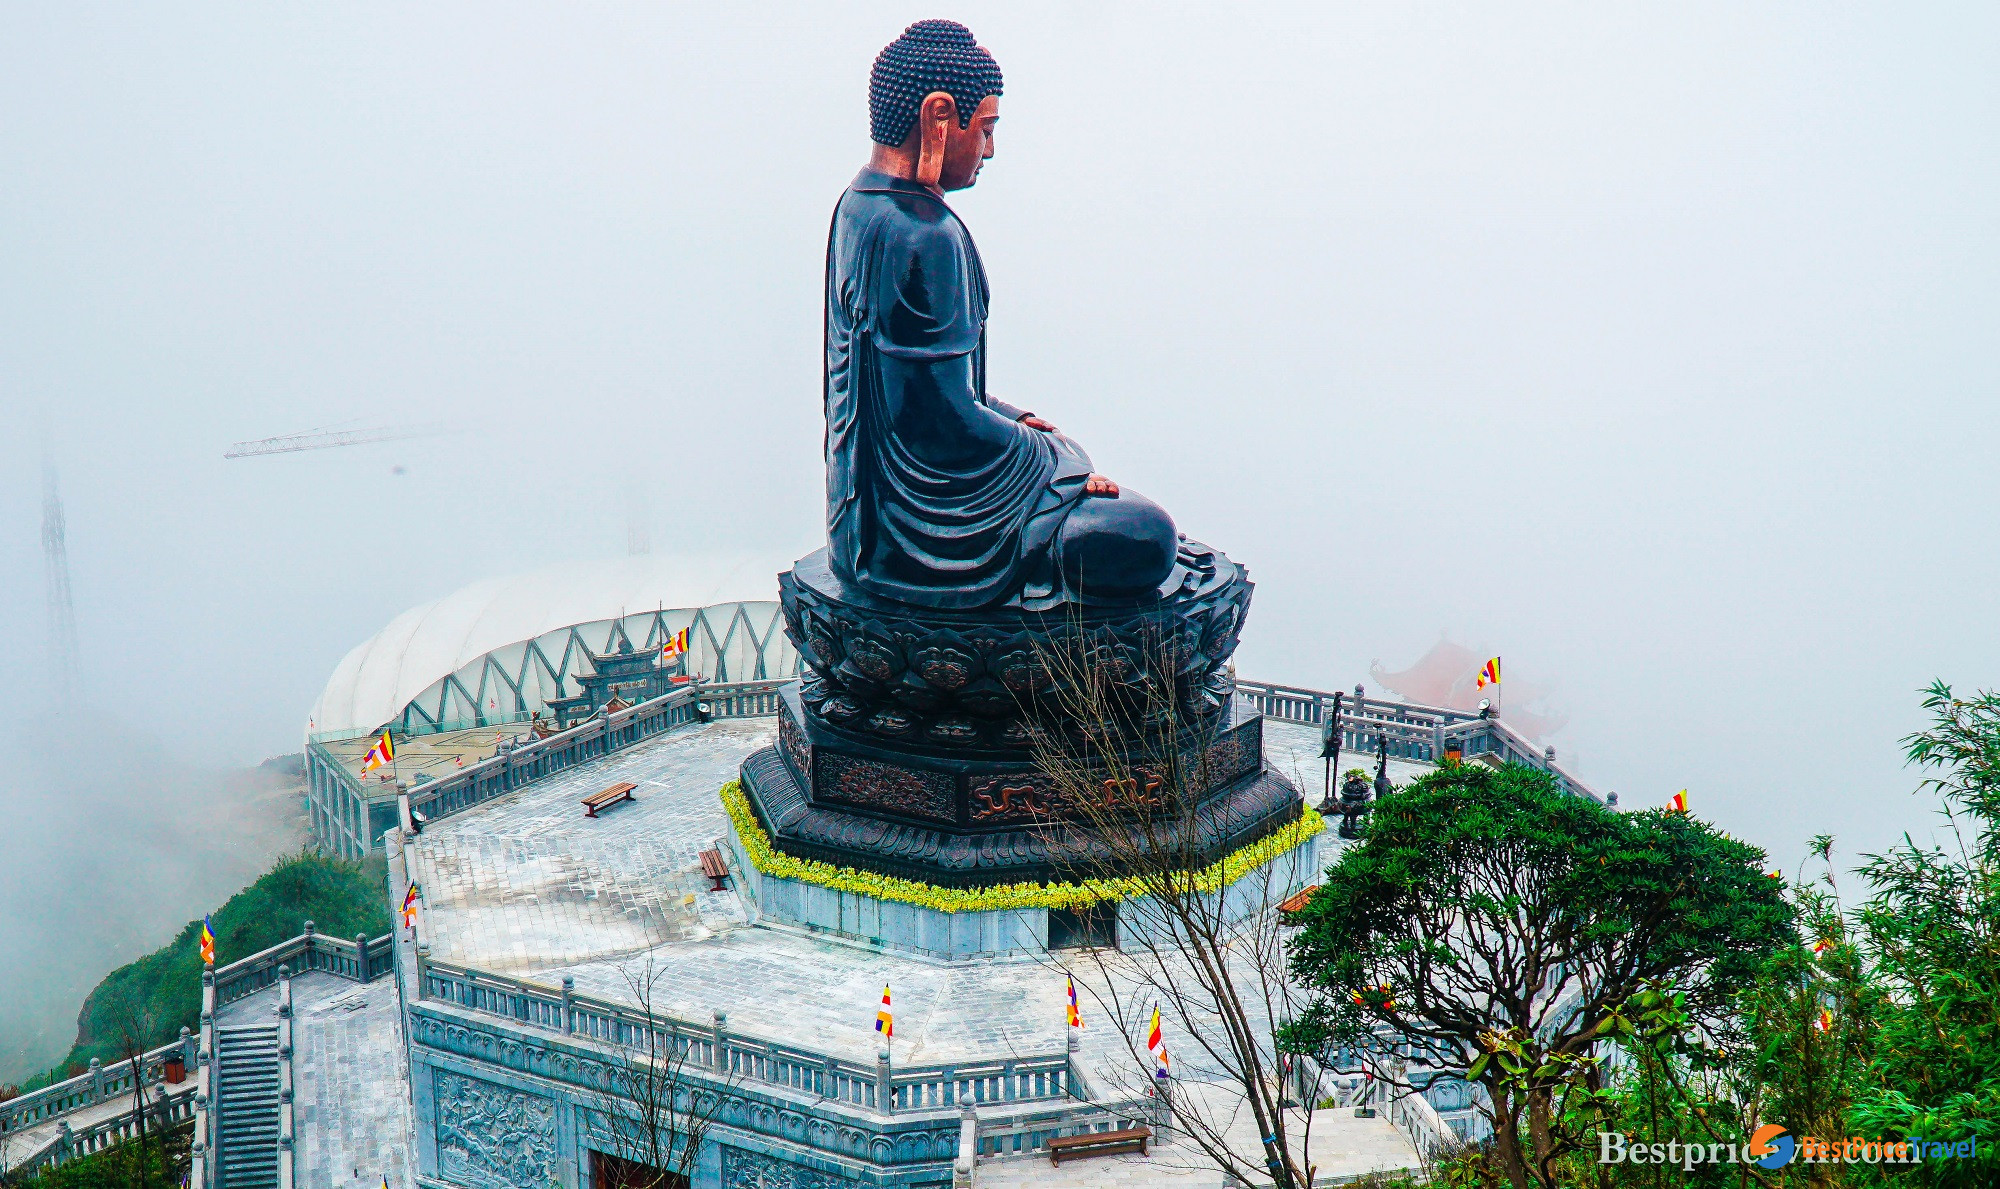 The giant Buddha statue on Mount Fansipan